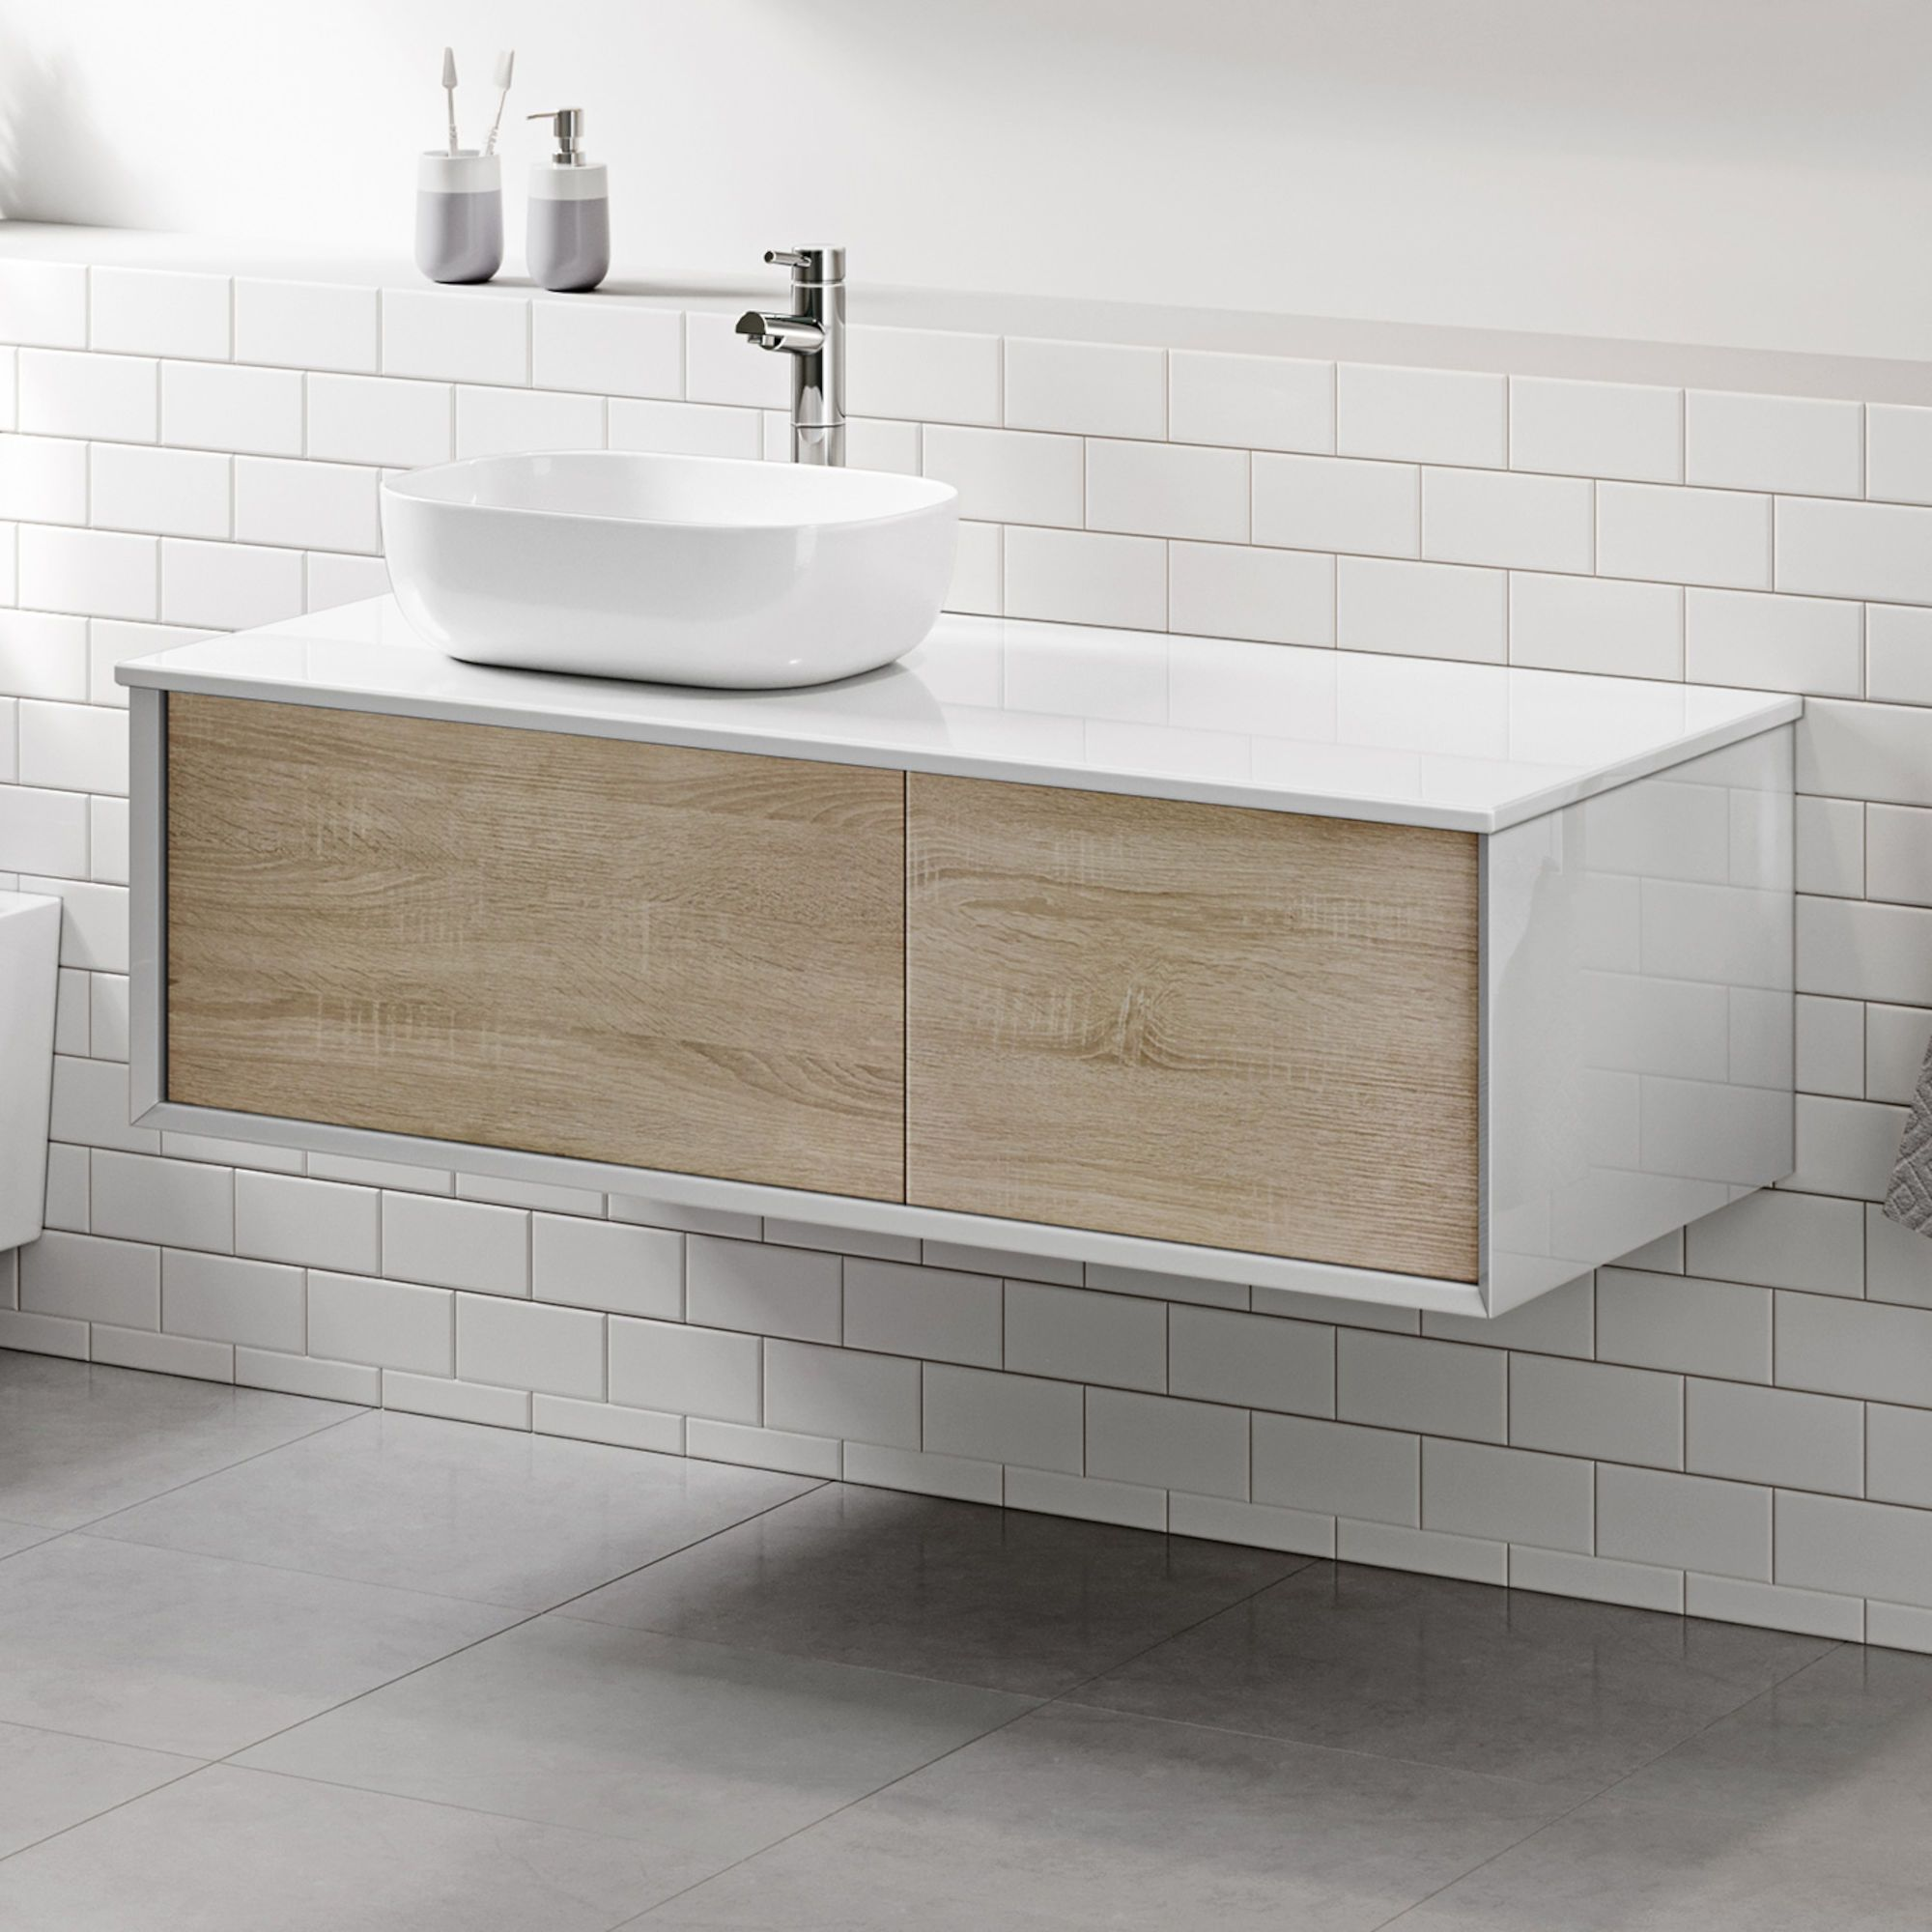 Brilliant 649 99 Berg Countertop Vanity Unit Bathroom Family In Download Free Architecture Designs Scobabritishbridgeorg